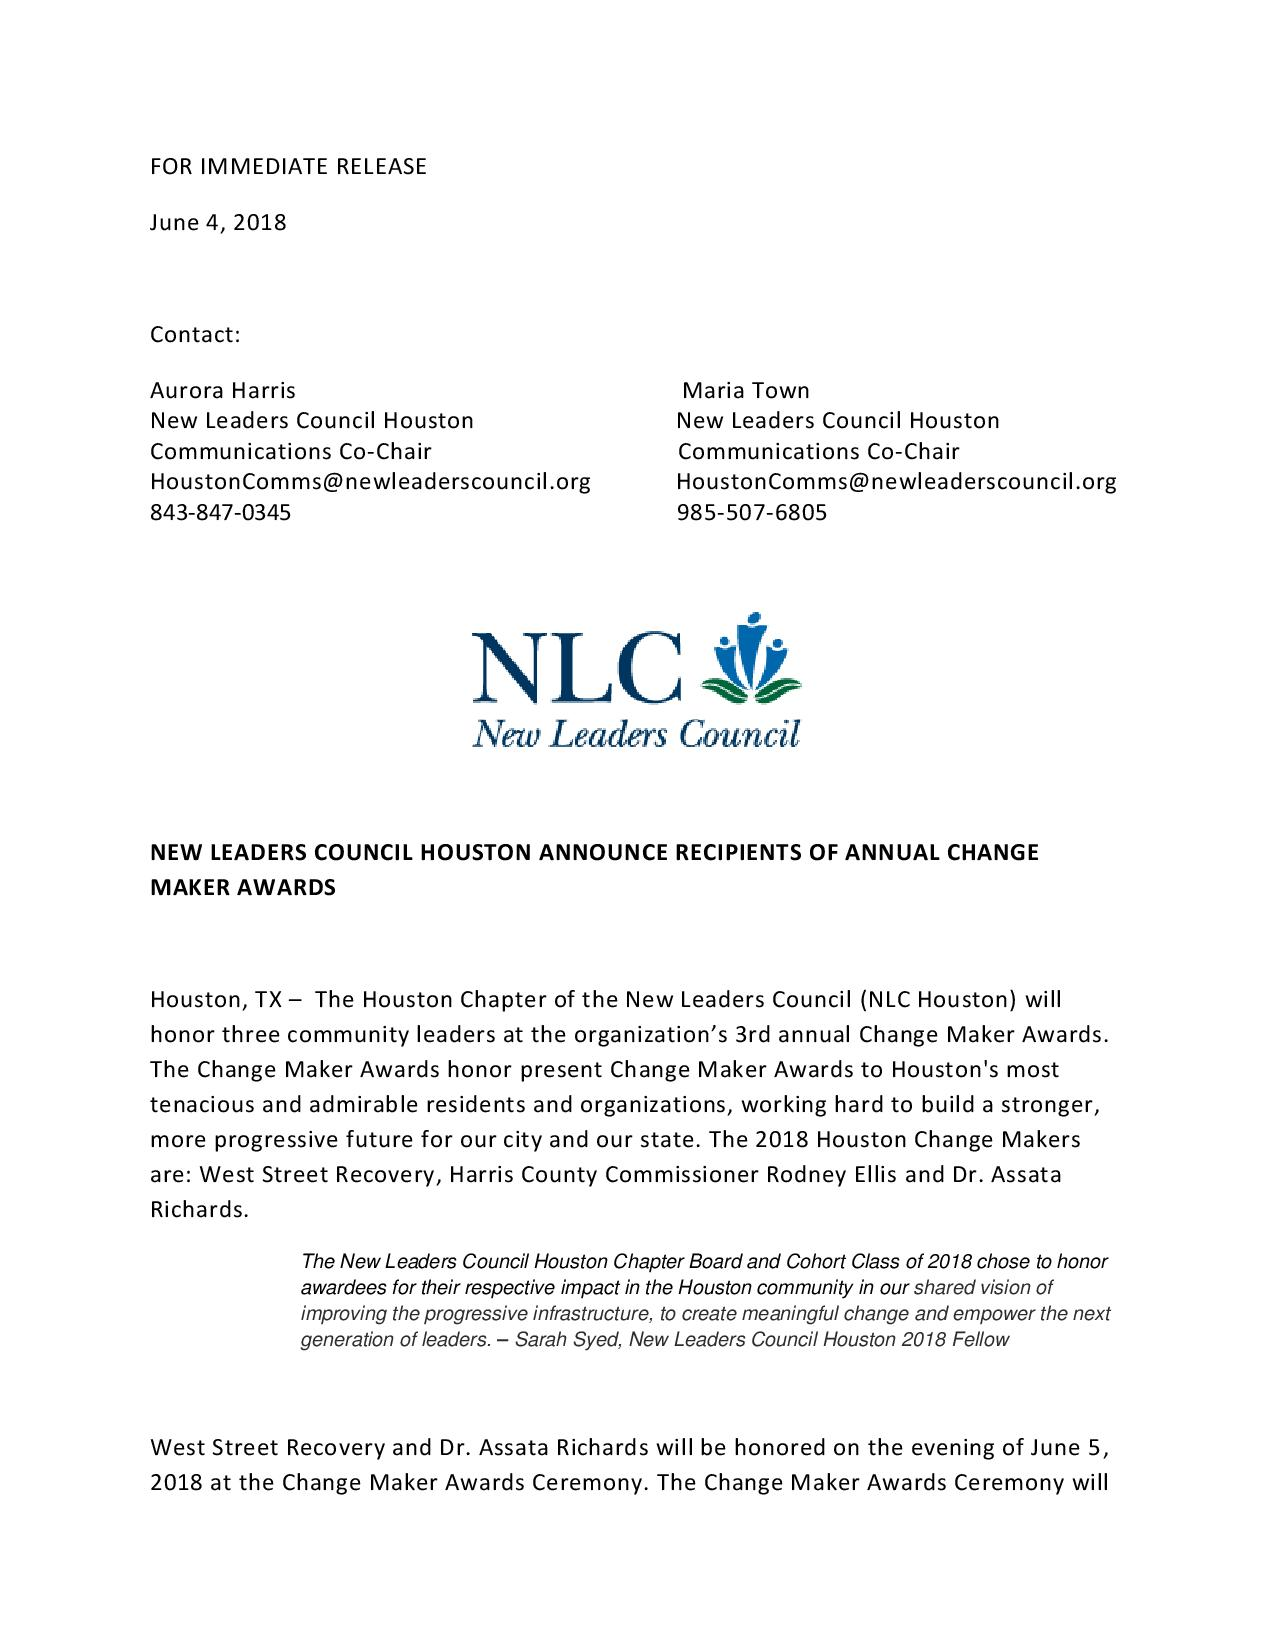 NLC Houston Announces Recipients of Annual Change Maker Awards